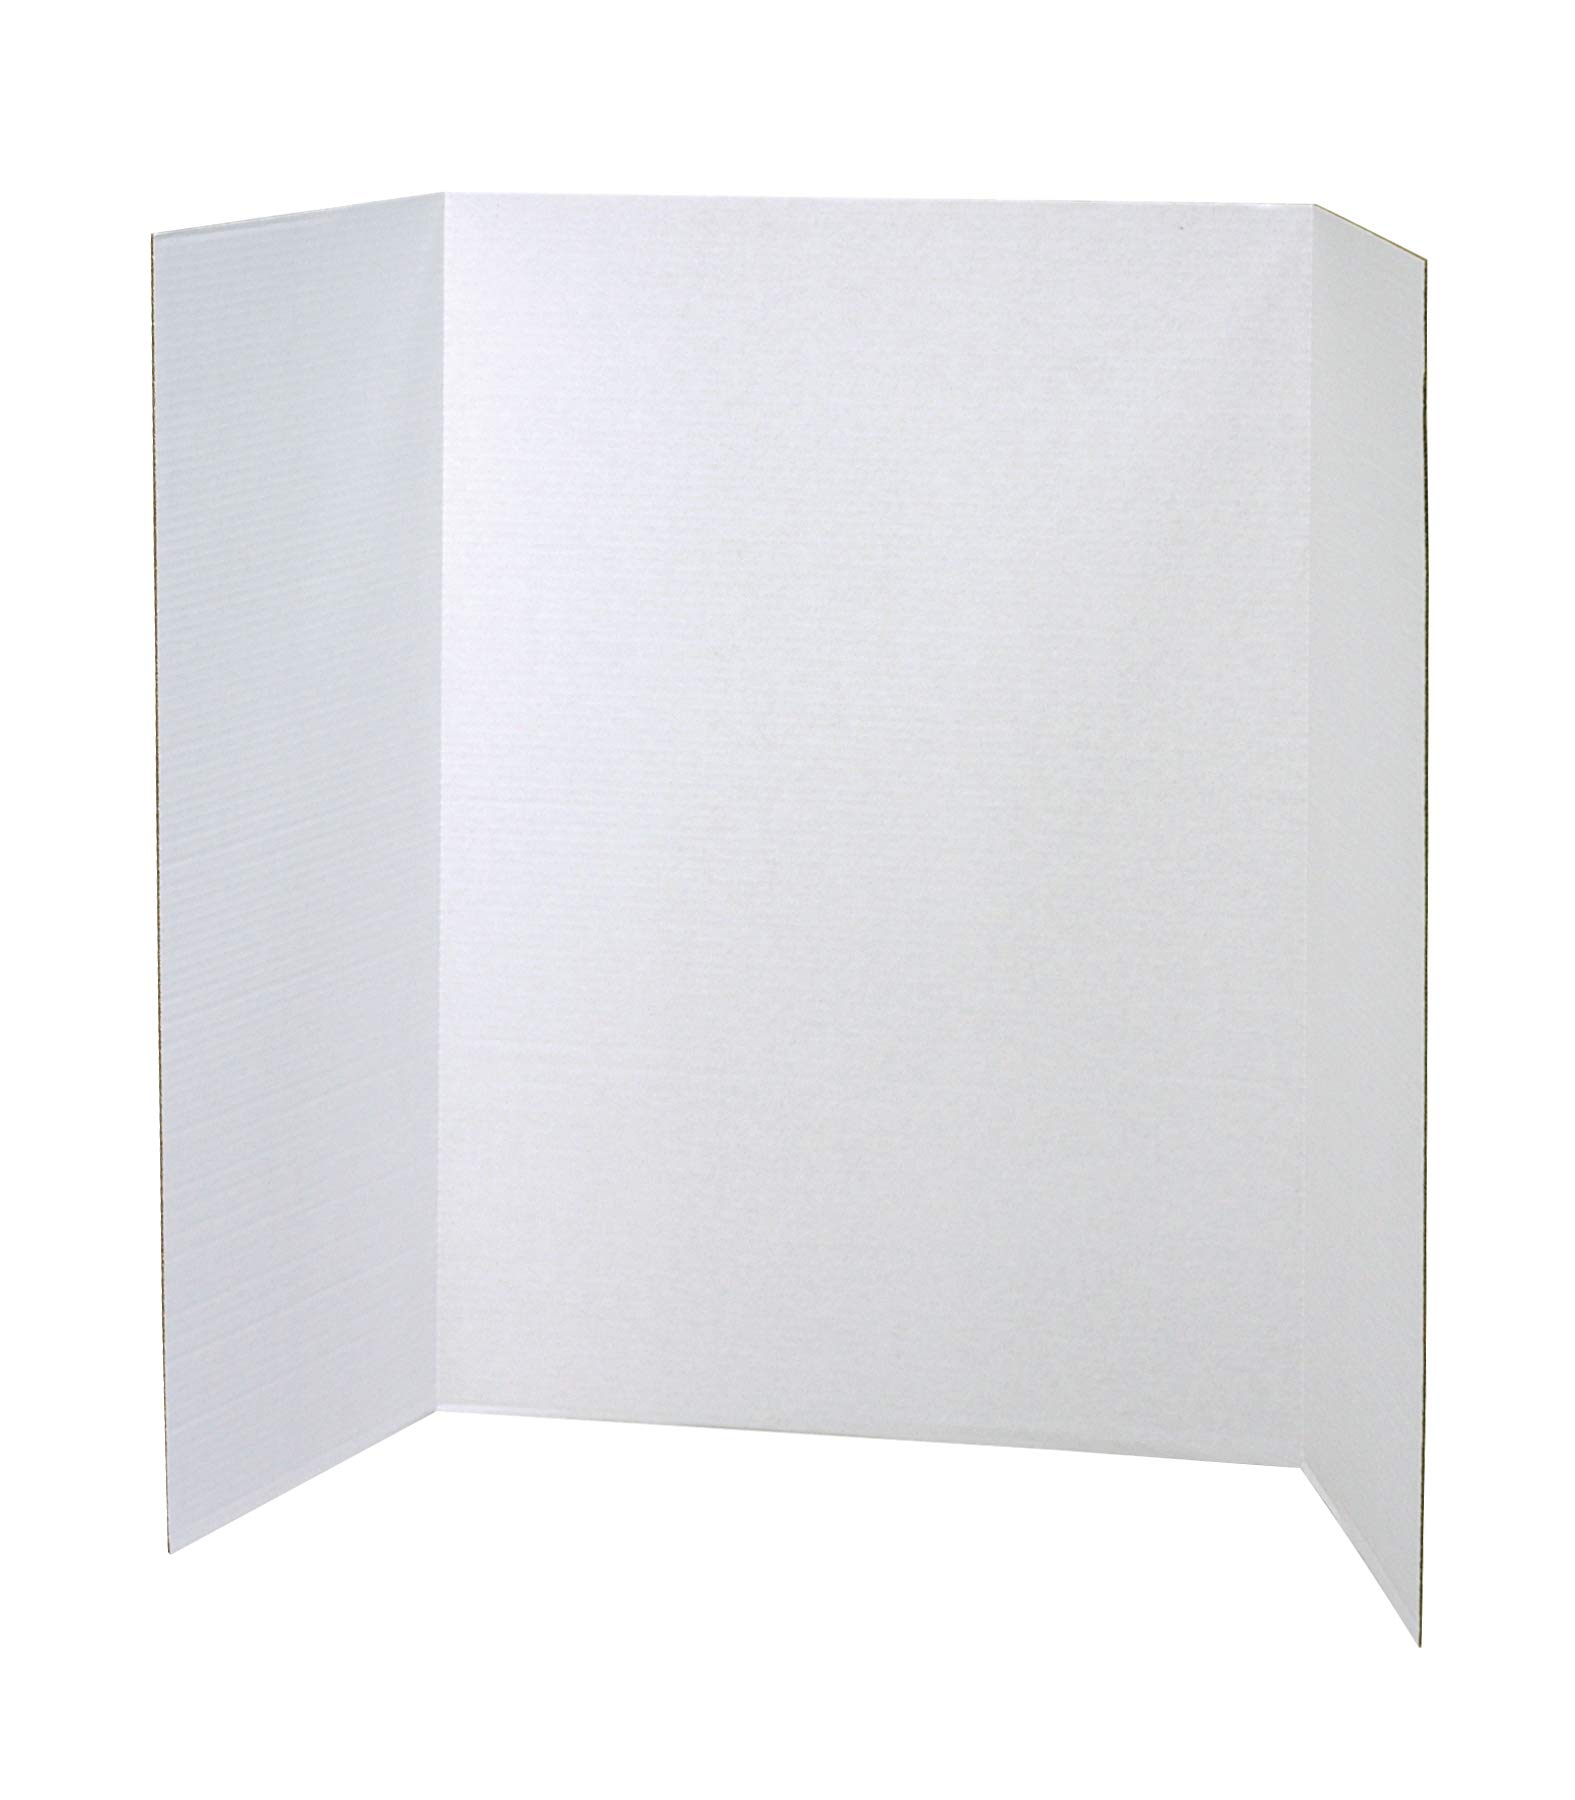 Pacon Single Wall Presentation Board, 48'' x 36'', White, 4 Boards by Spotlight Presentation Board